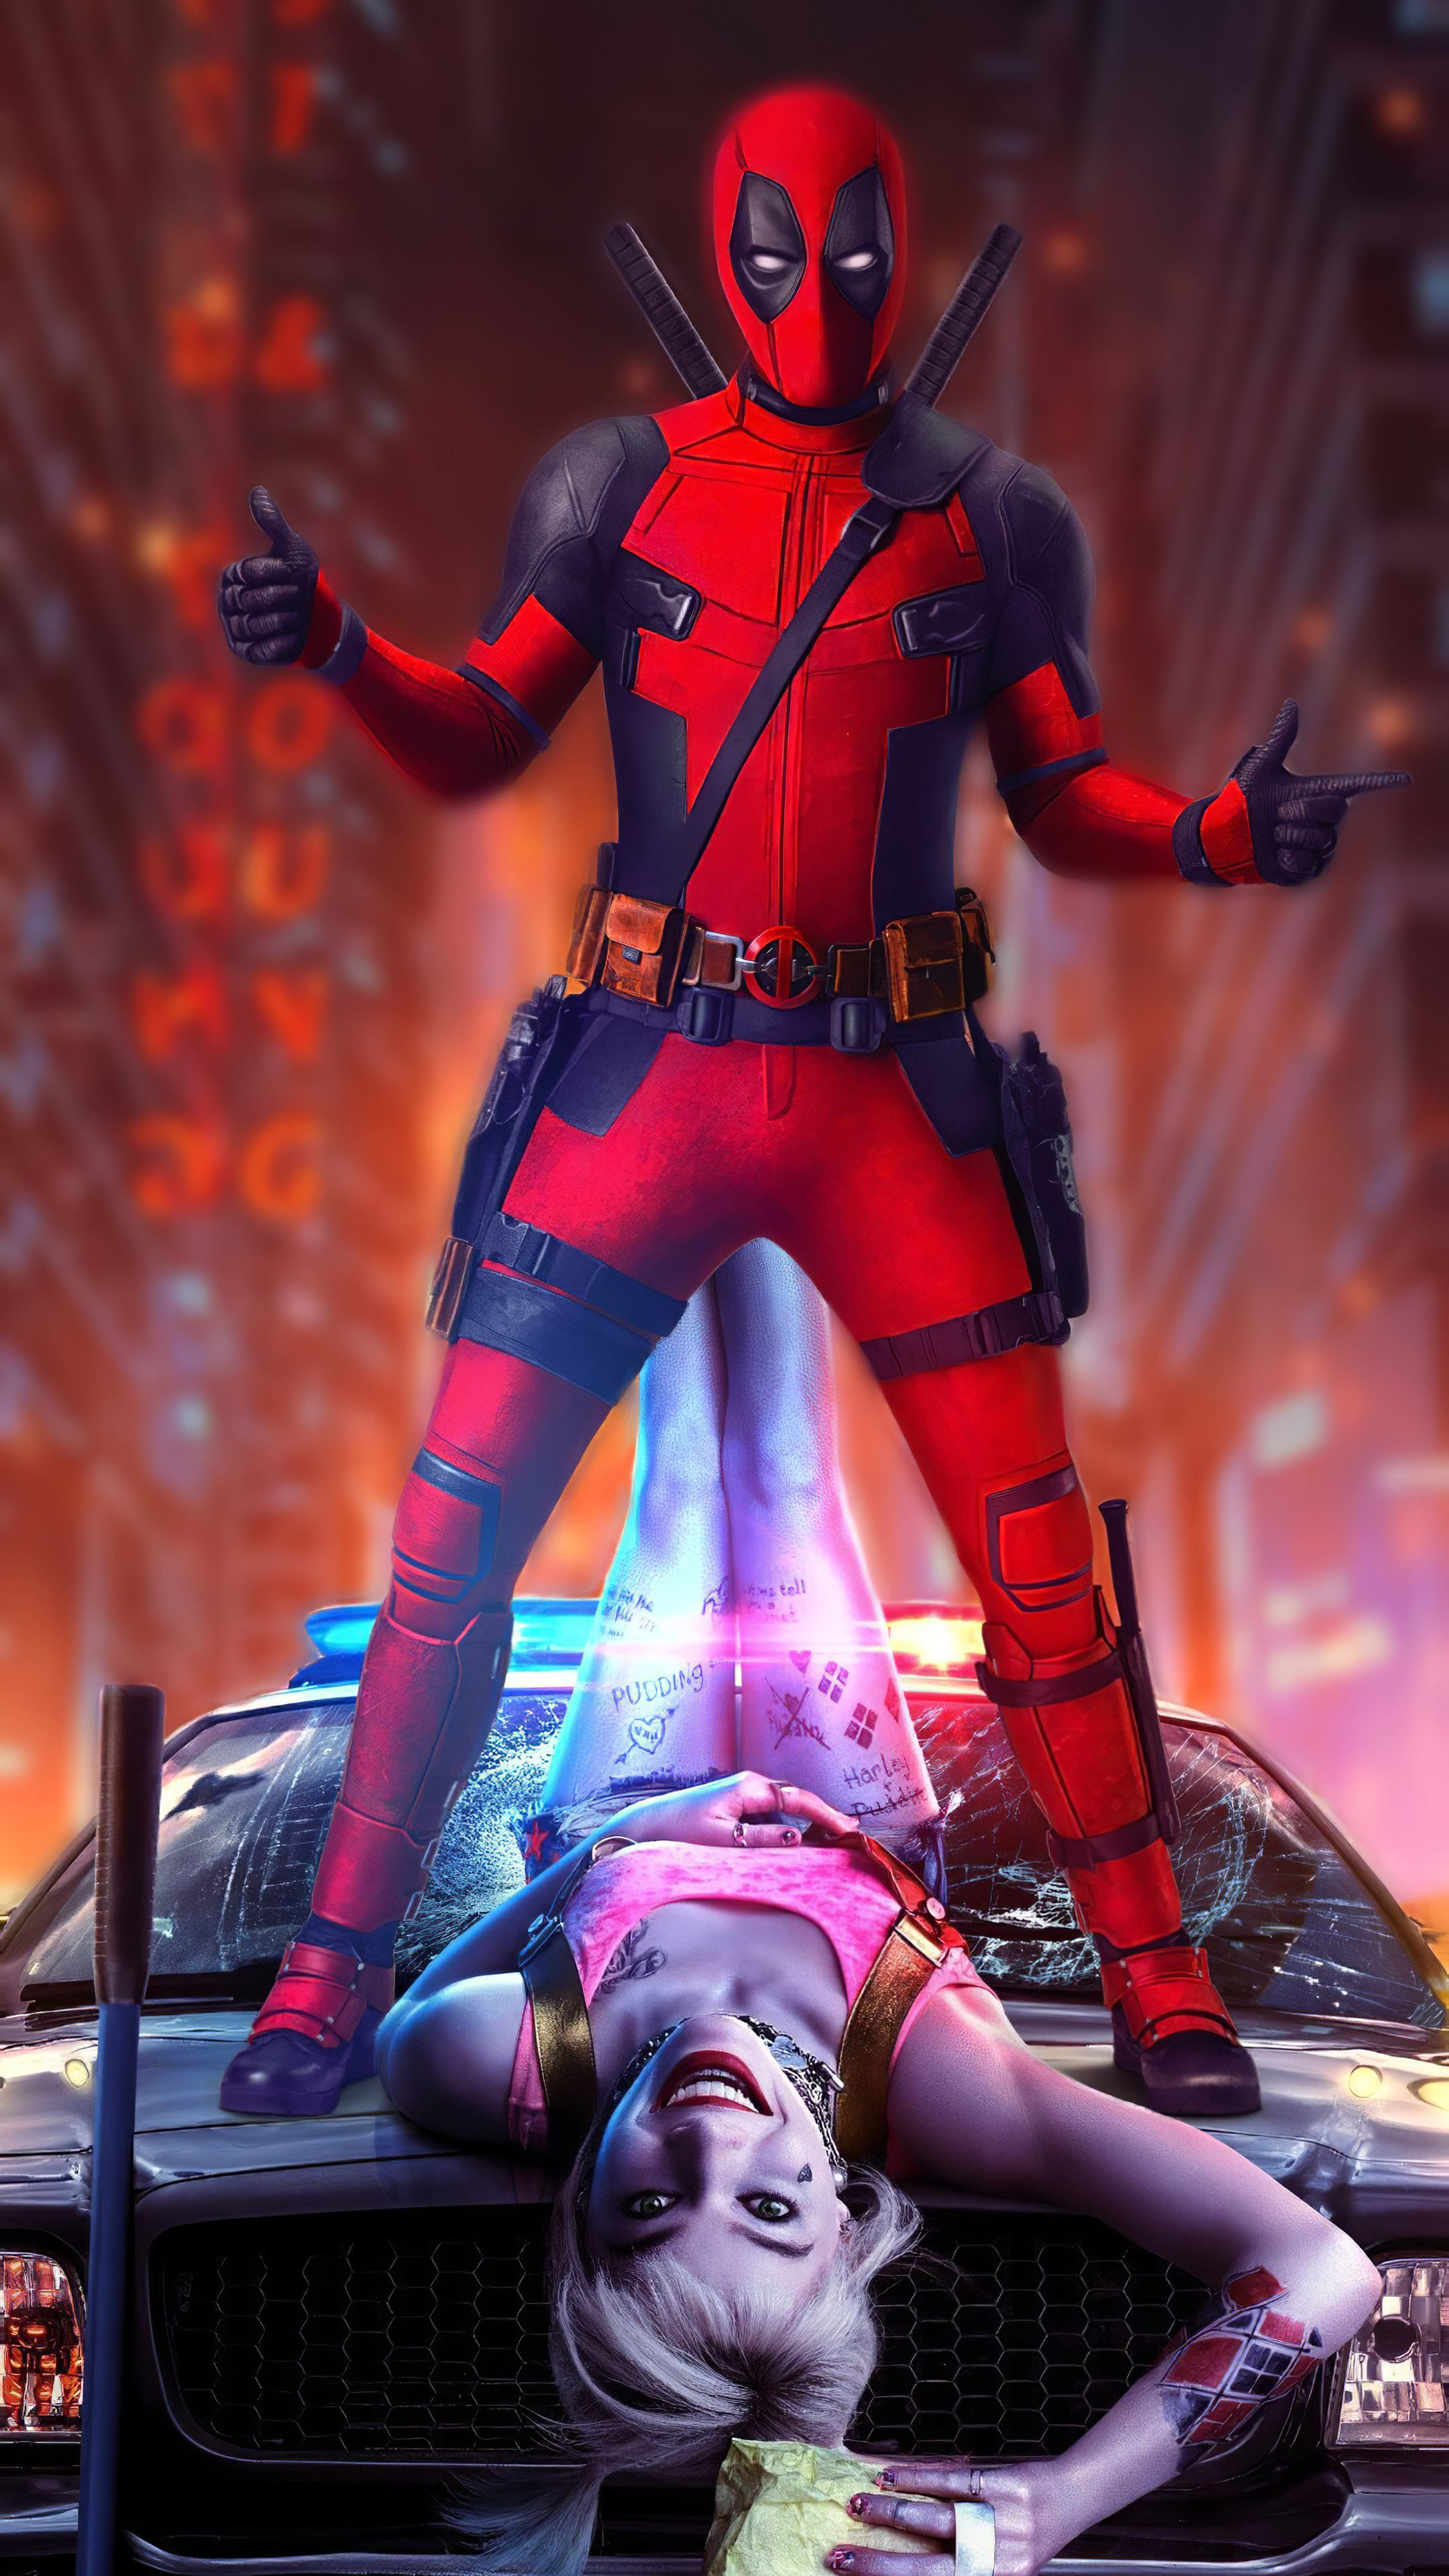 Samsung S20 Wallpaper In 2020 Deadpool Wallpaper Deadpool Wallpaper Iphone Samsung Wallpaper Android